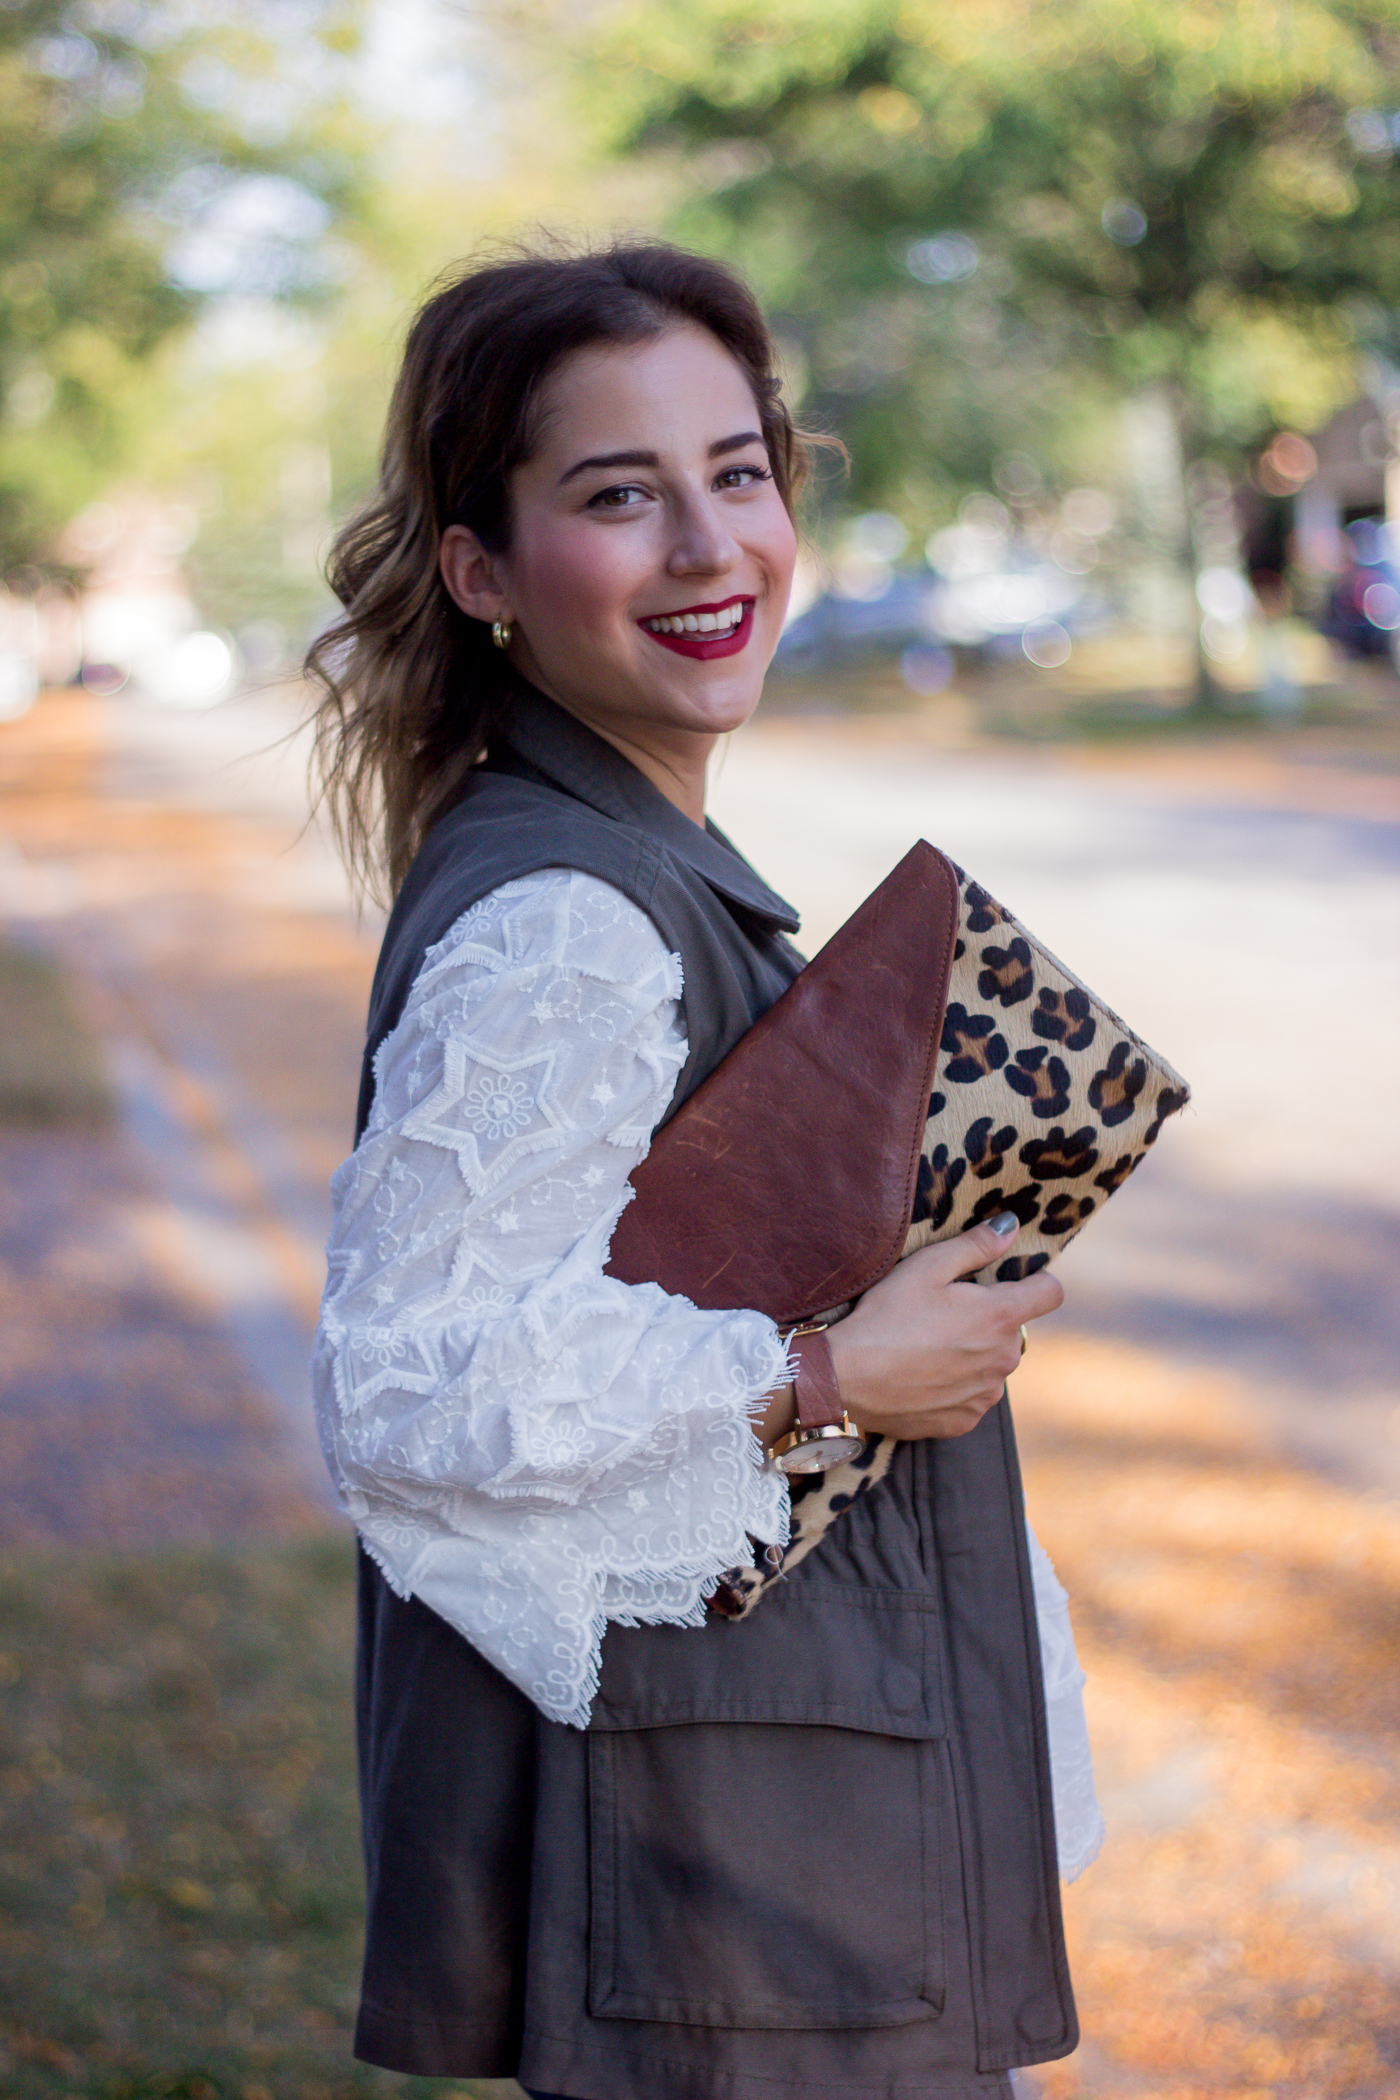 Canadian fashion and lifestyle blogger, Jackie at Something About That, wearing the Full of Stars Embroidered Dolly Top in White from Chicwish